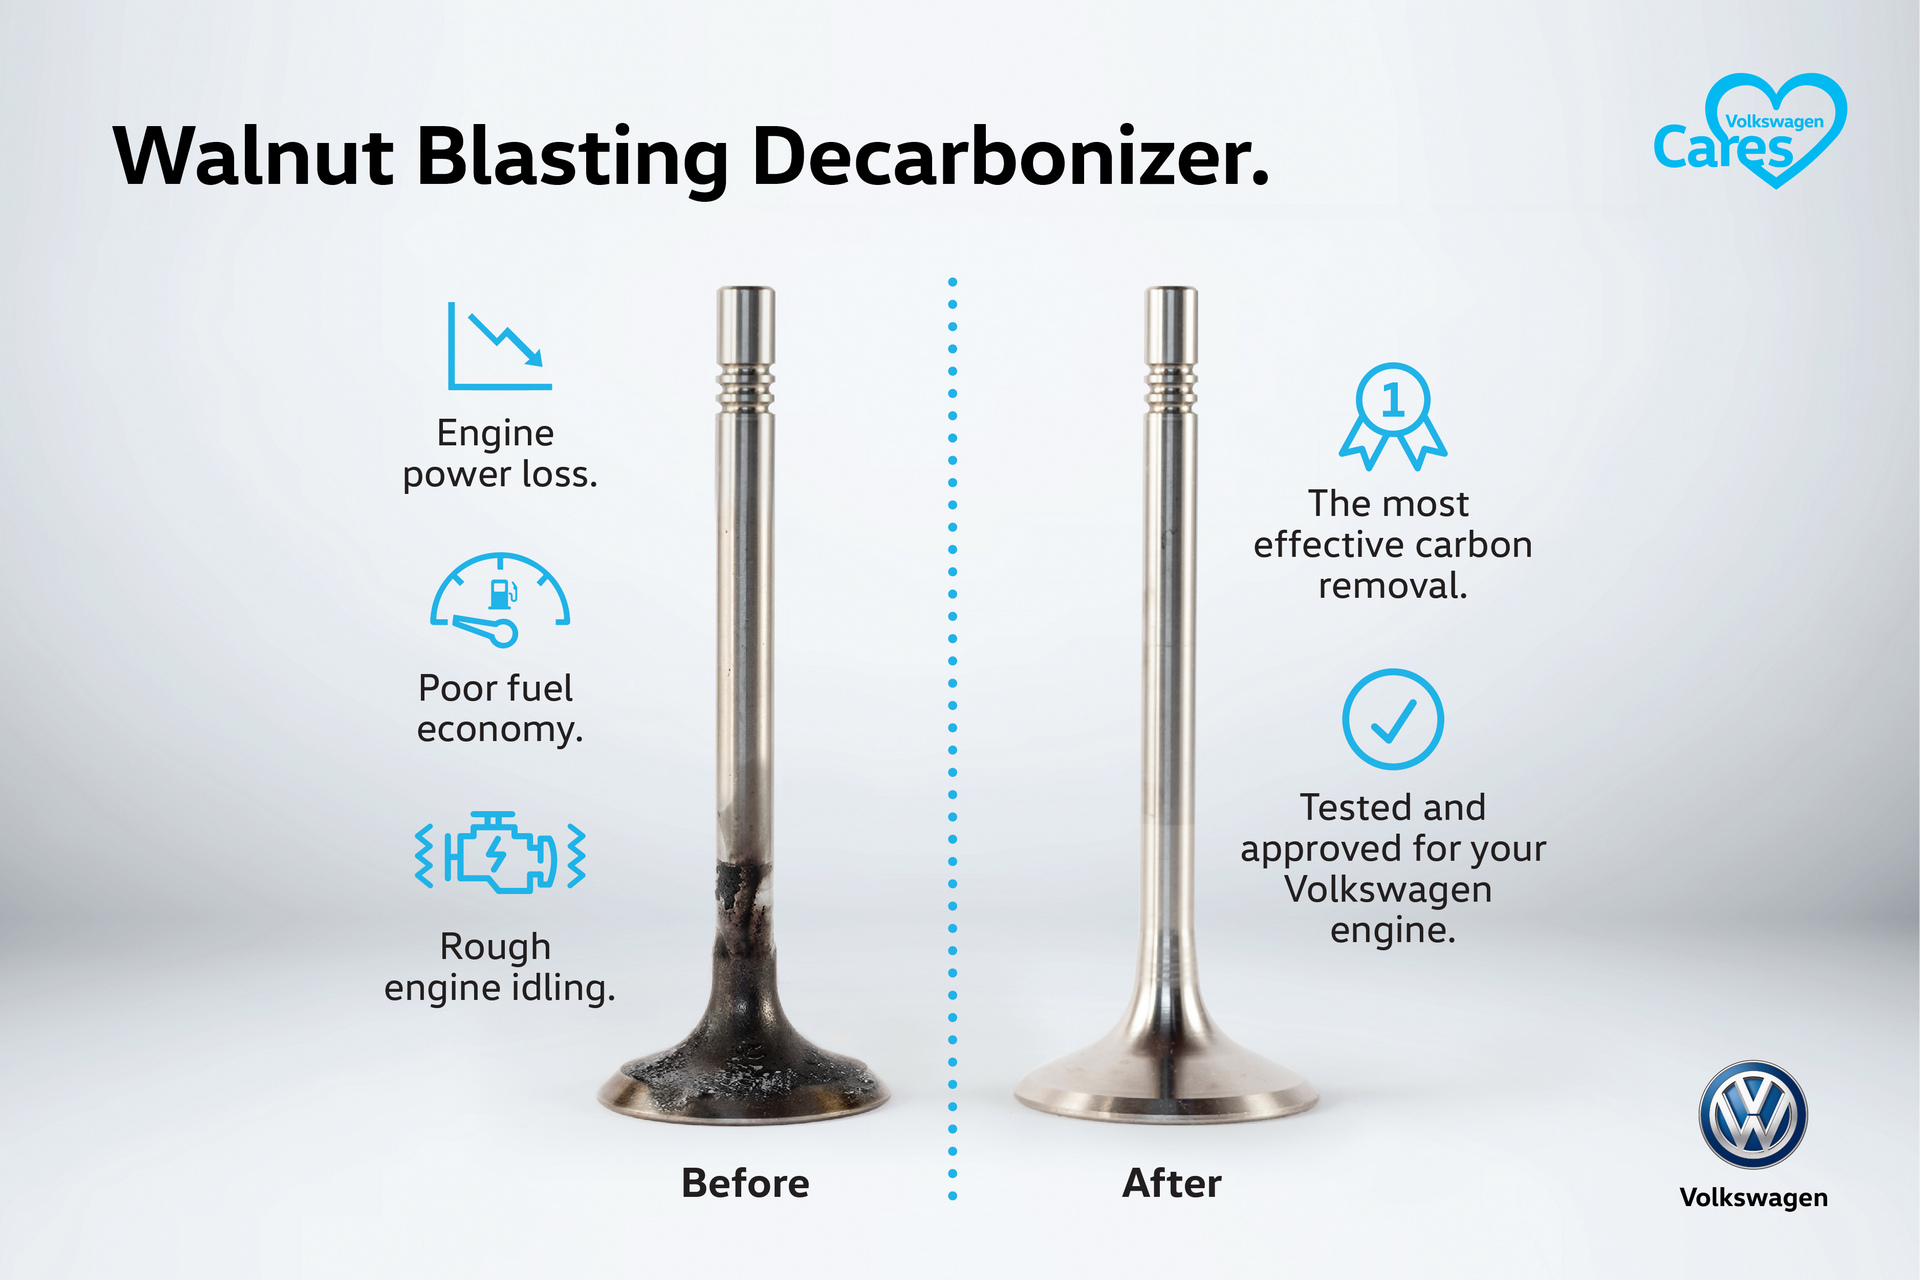 volkswagen recommends you blast some walnuts into your engine to clean it up